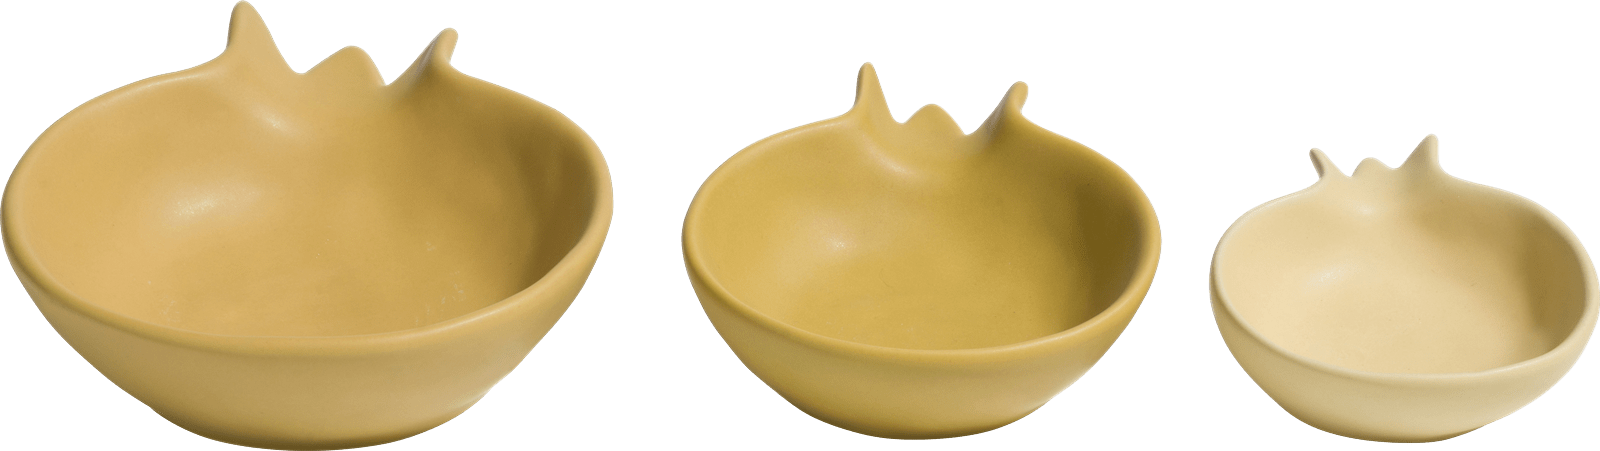 XOOON - Coco Maison - pomegranate set of 3 bowls